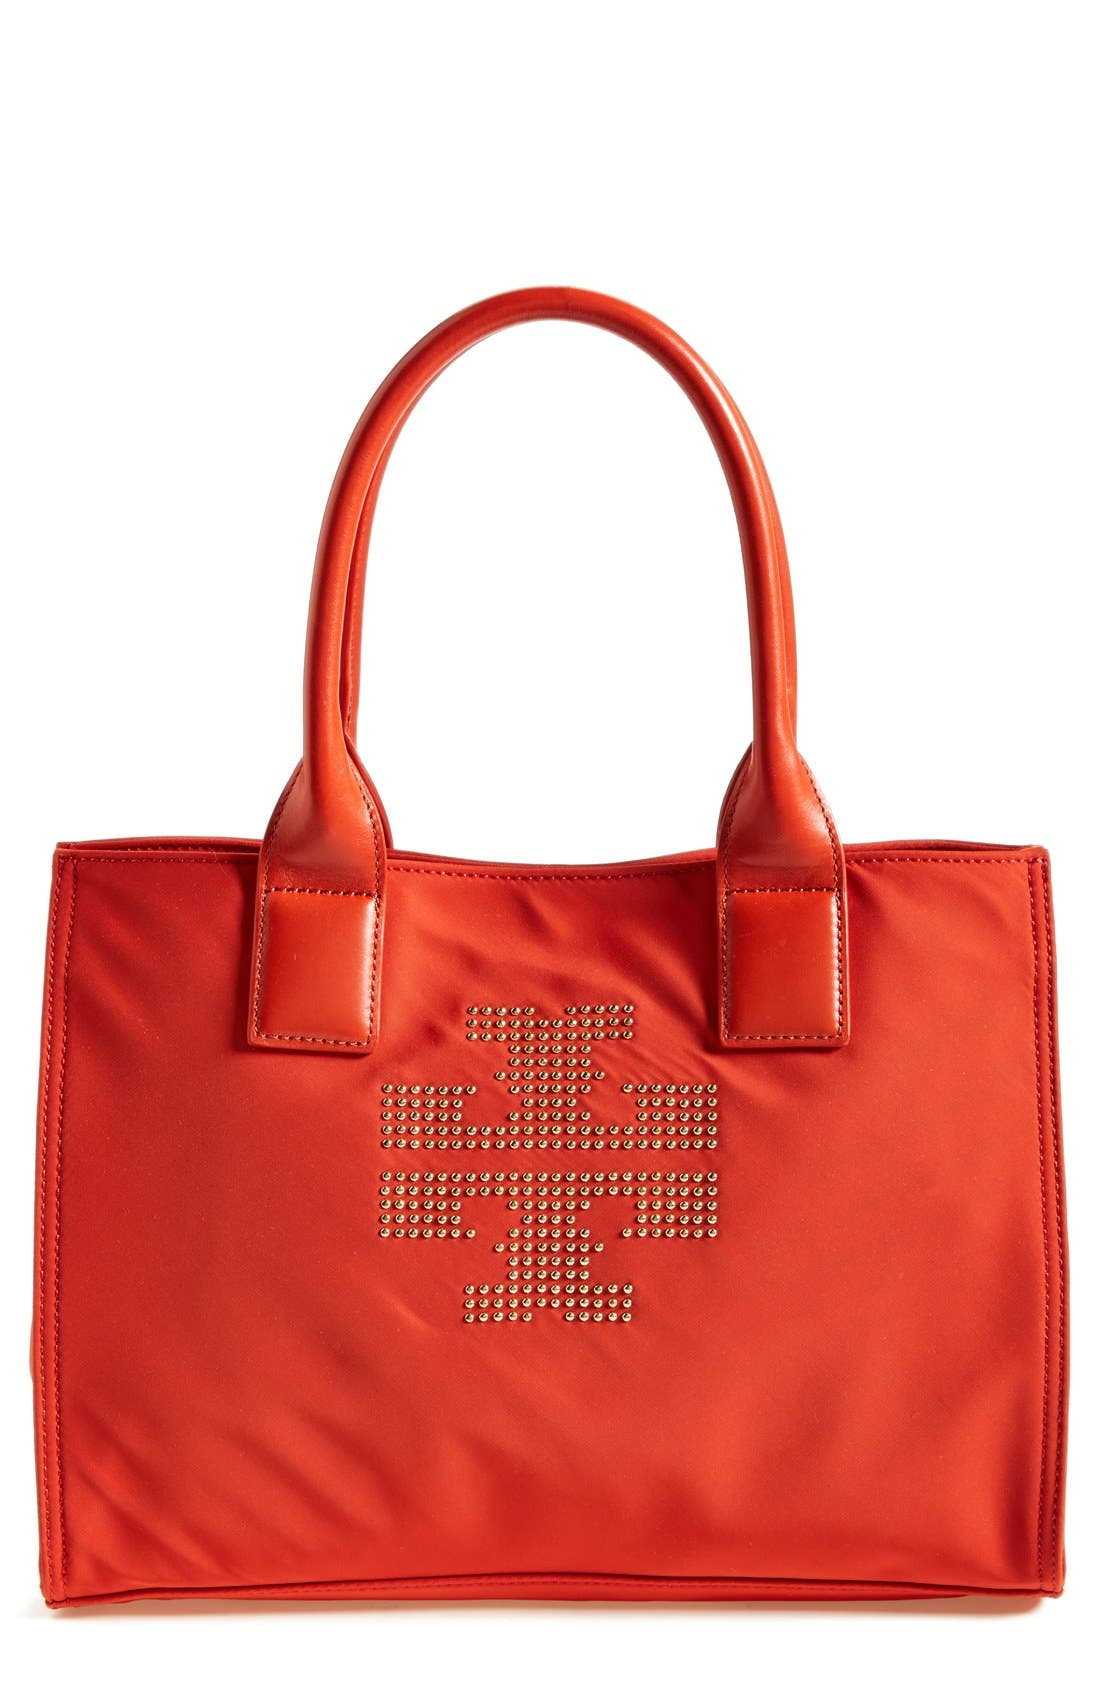 Alternate Image 1 Selected - Tory Burch 'Mini Ella' Studded Tote